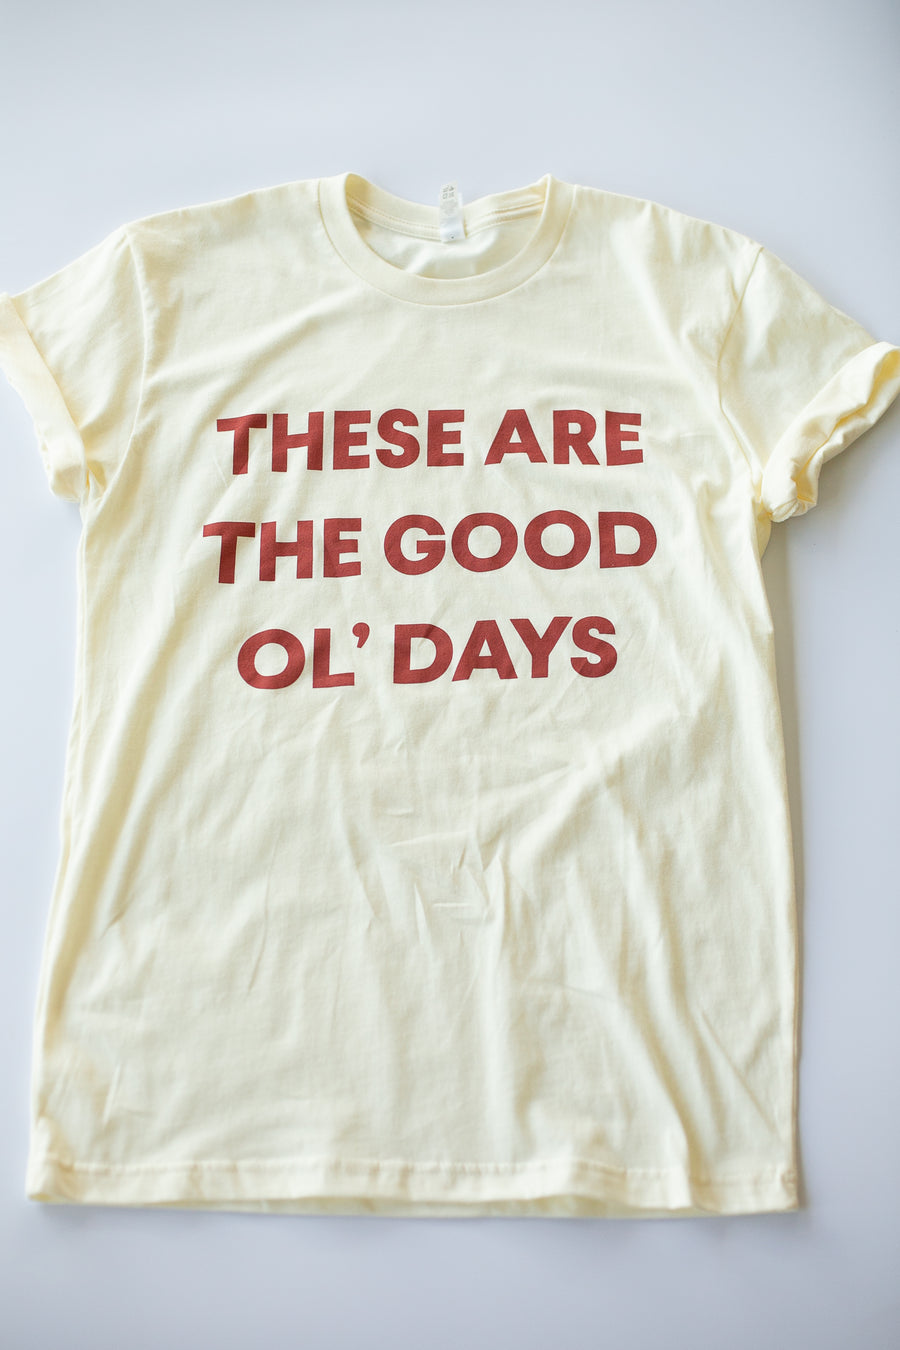 These are the good ol' days Unisex Crewneck Tee | Cream